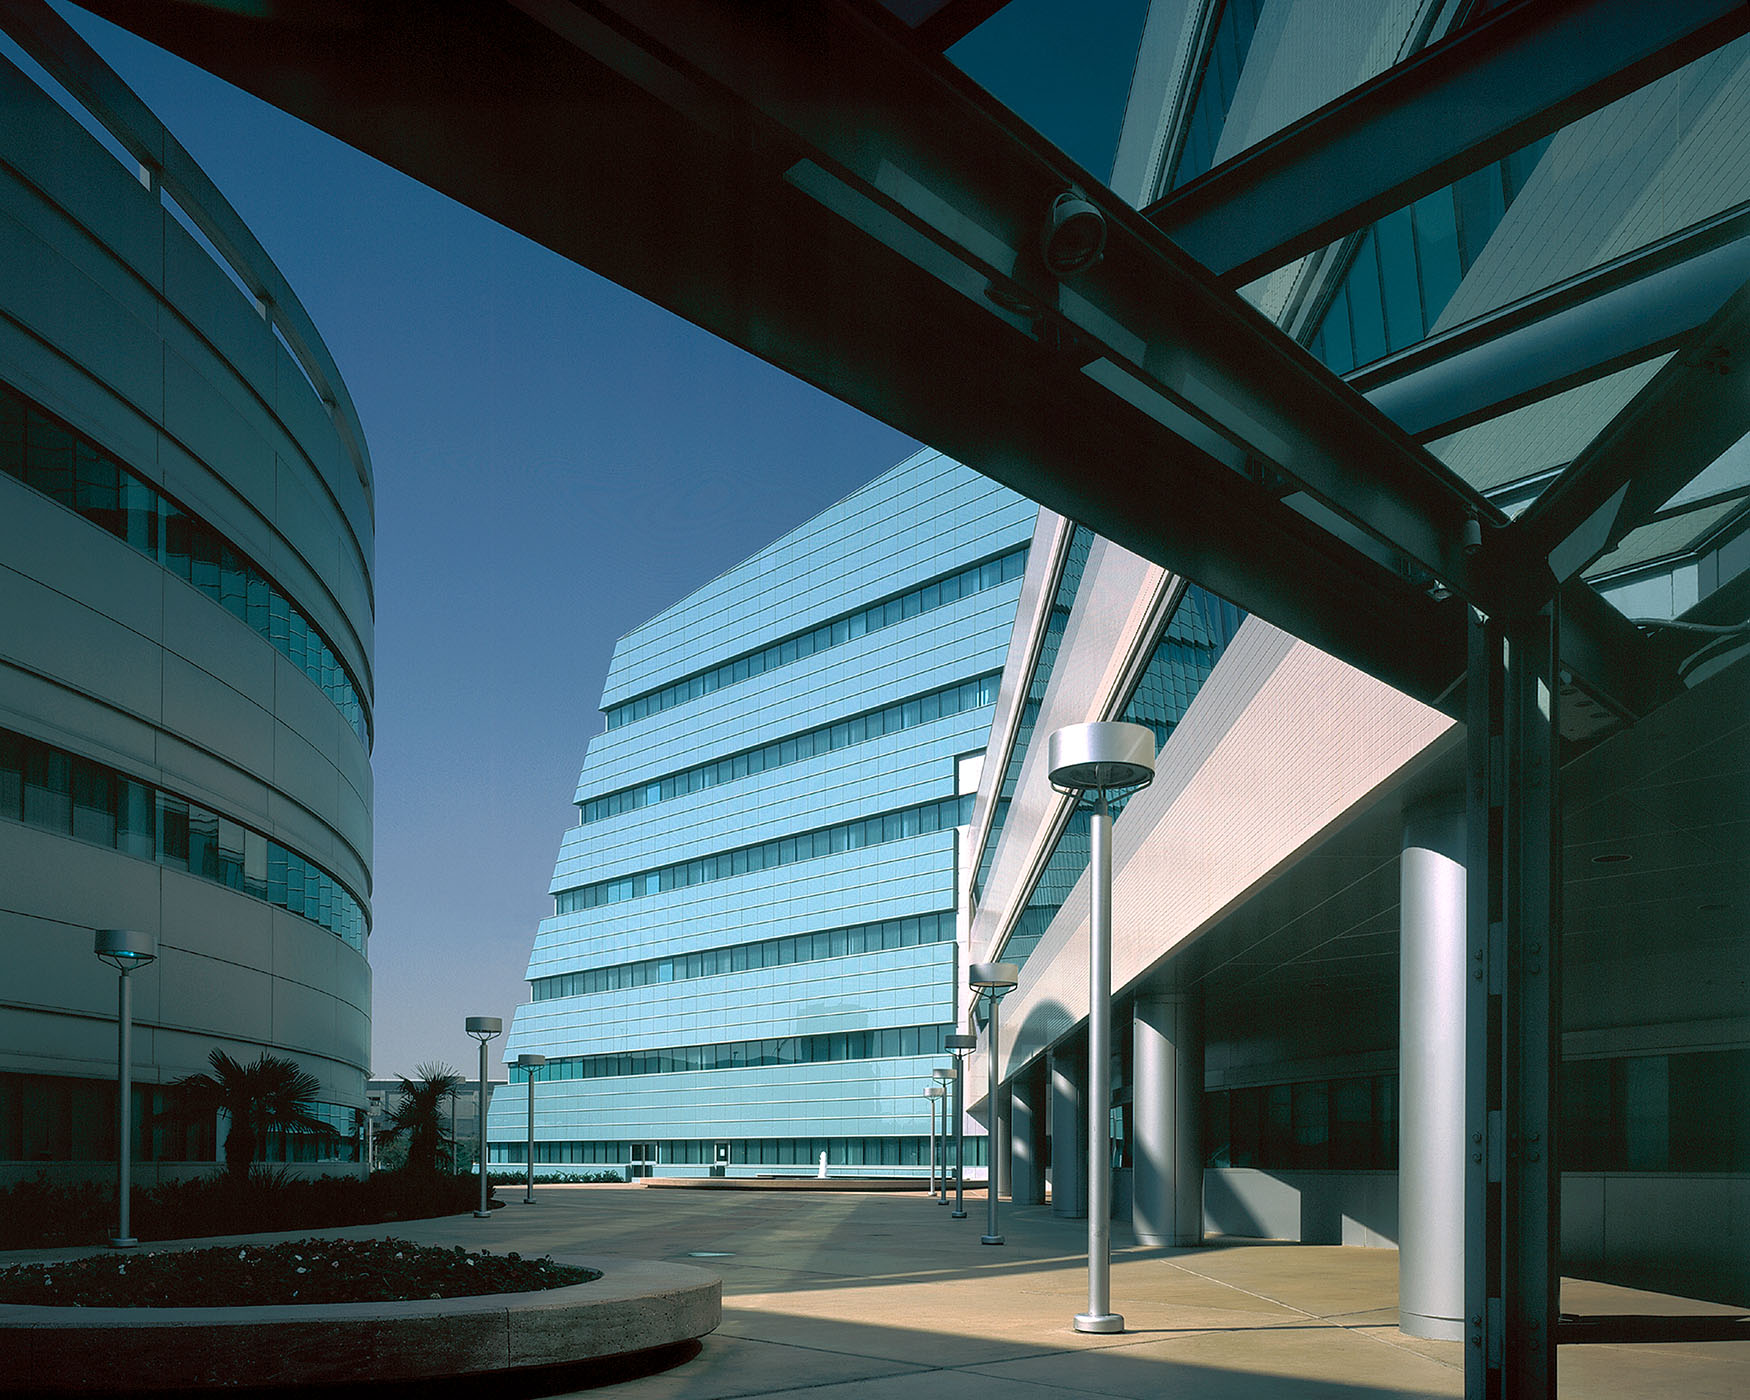 Kaiser Hospital, Baldwin Park, California, Arthur Erickson Architect